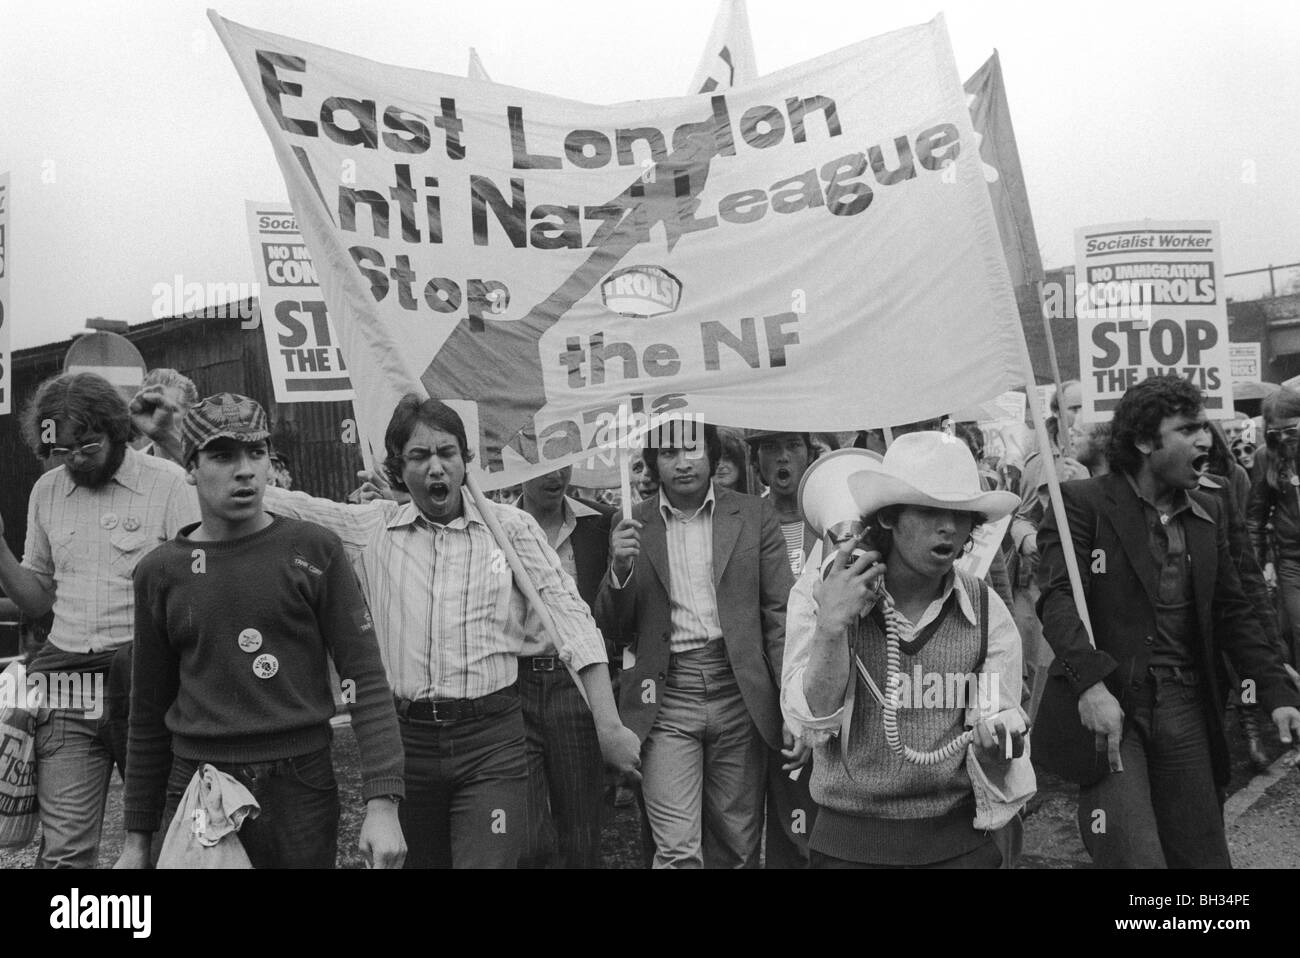 Anti Nazi League march through Tower Hamlets Stop the NF National Front East London UK 1978 HOMER SYKES - Stock Image